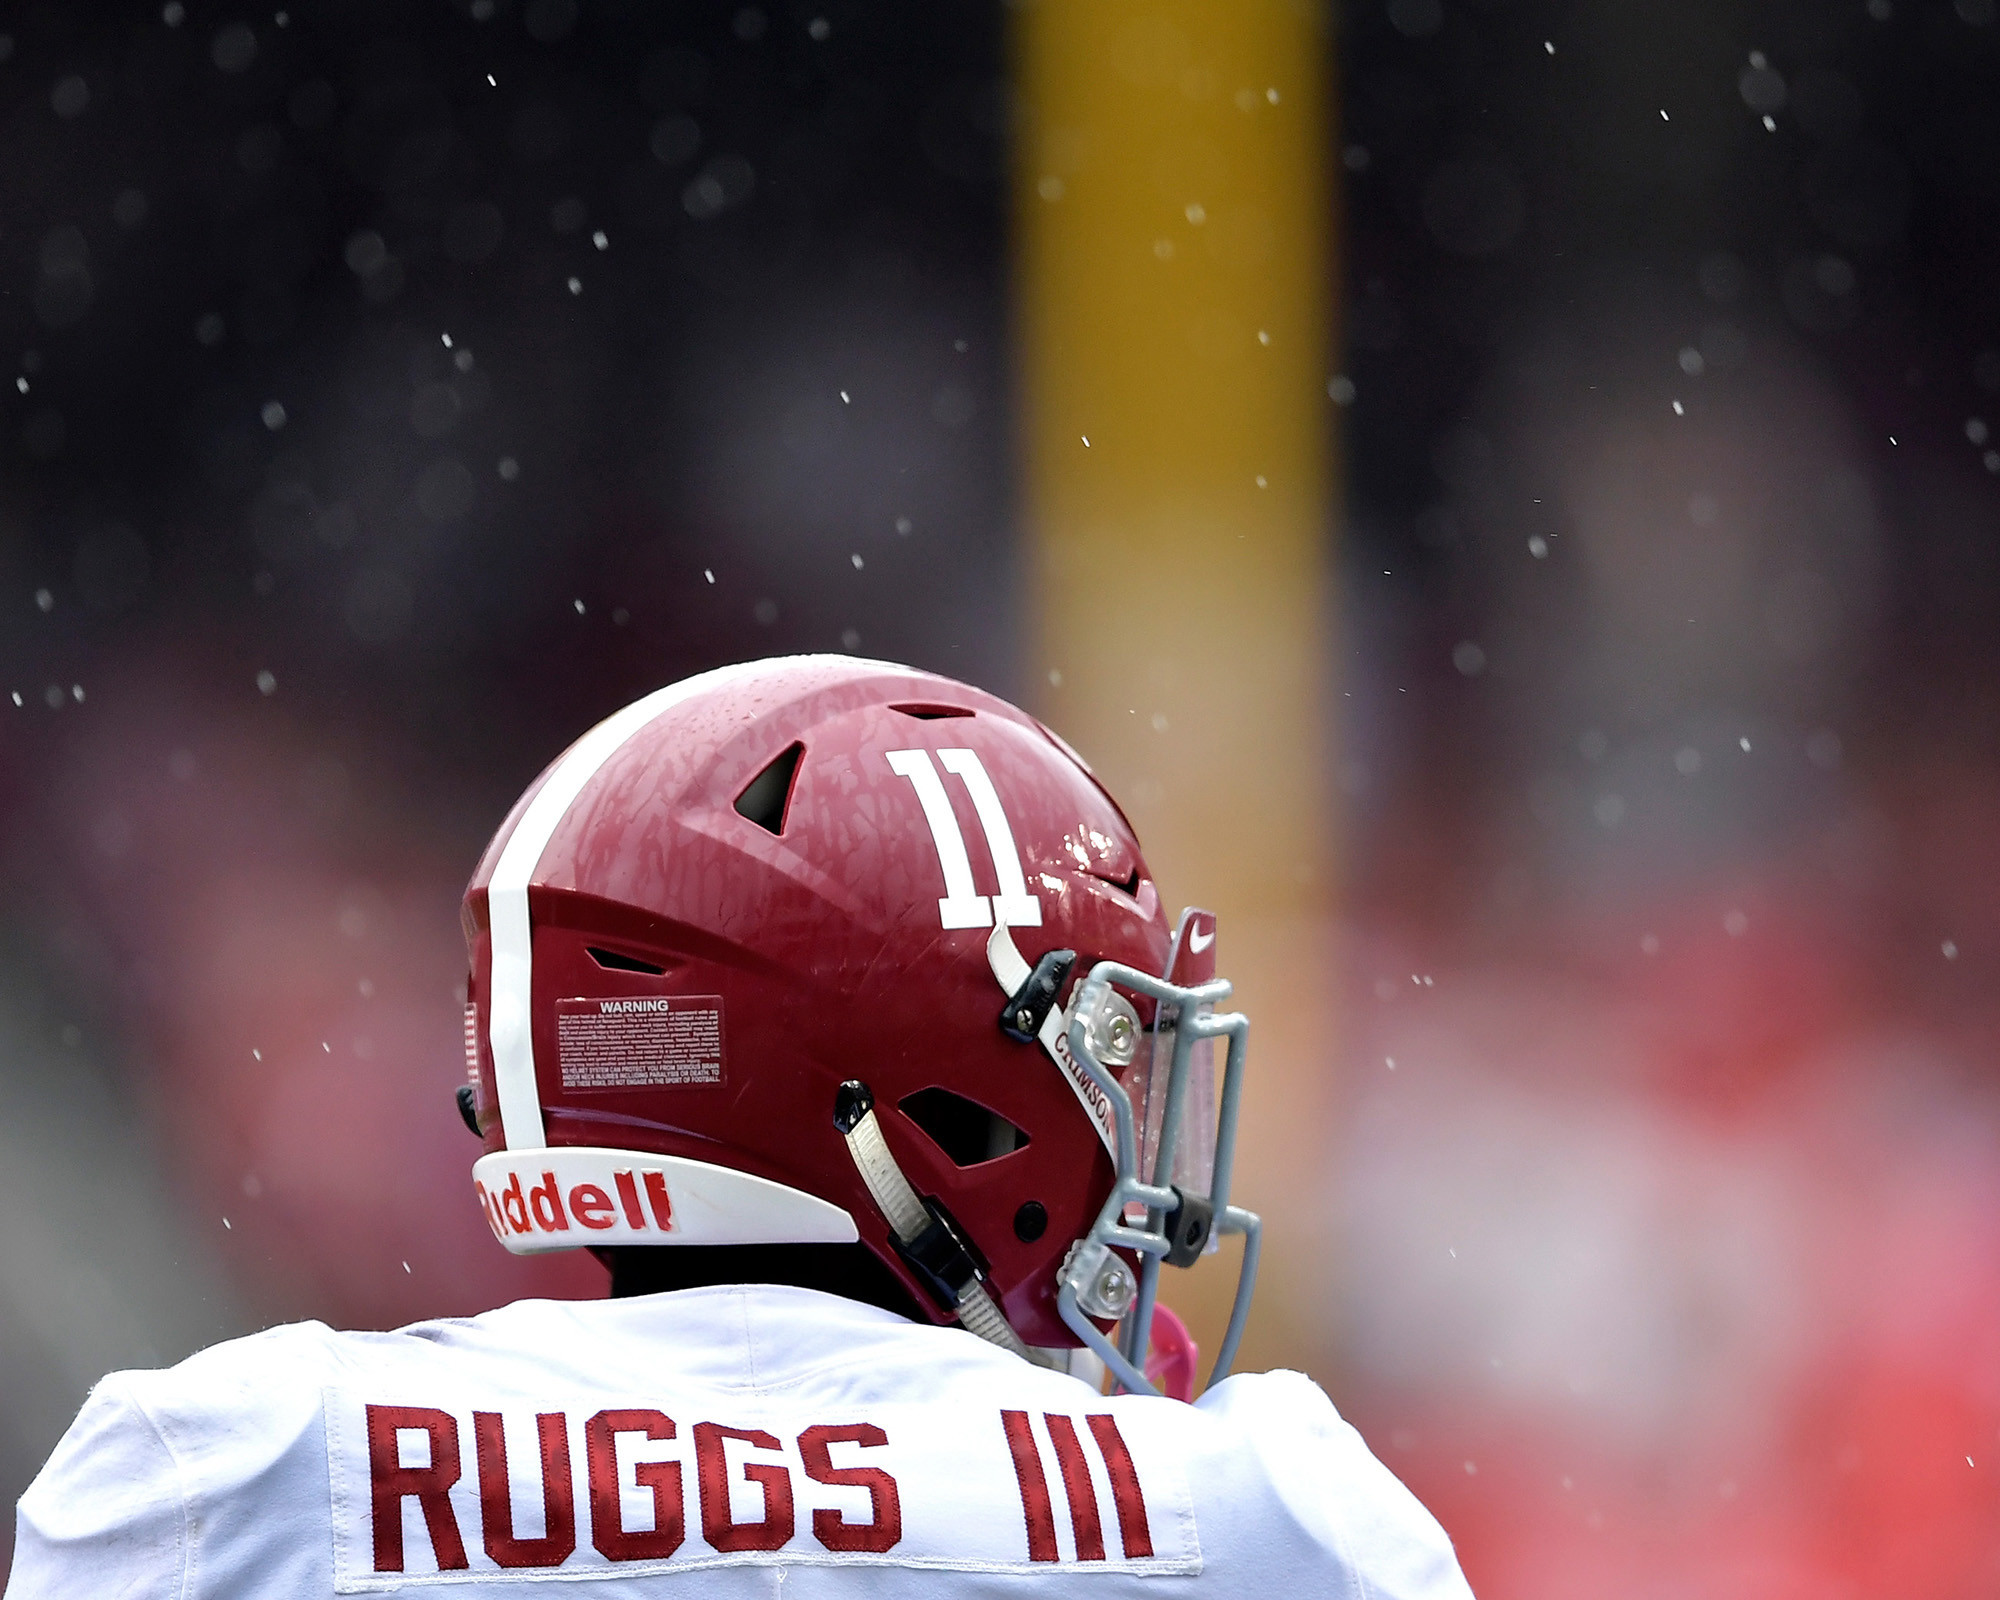 Rain falls during the first half of the NCAA football game between the Arkansas Razorbacks and the Alabama Crimson Tide at Razorback Stadium on Oct. 6, 2018, in Fayetteville, Ark. Alabama defeated Arkansas 65-31. (Photo by Lee Walls)